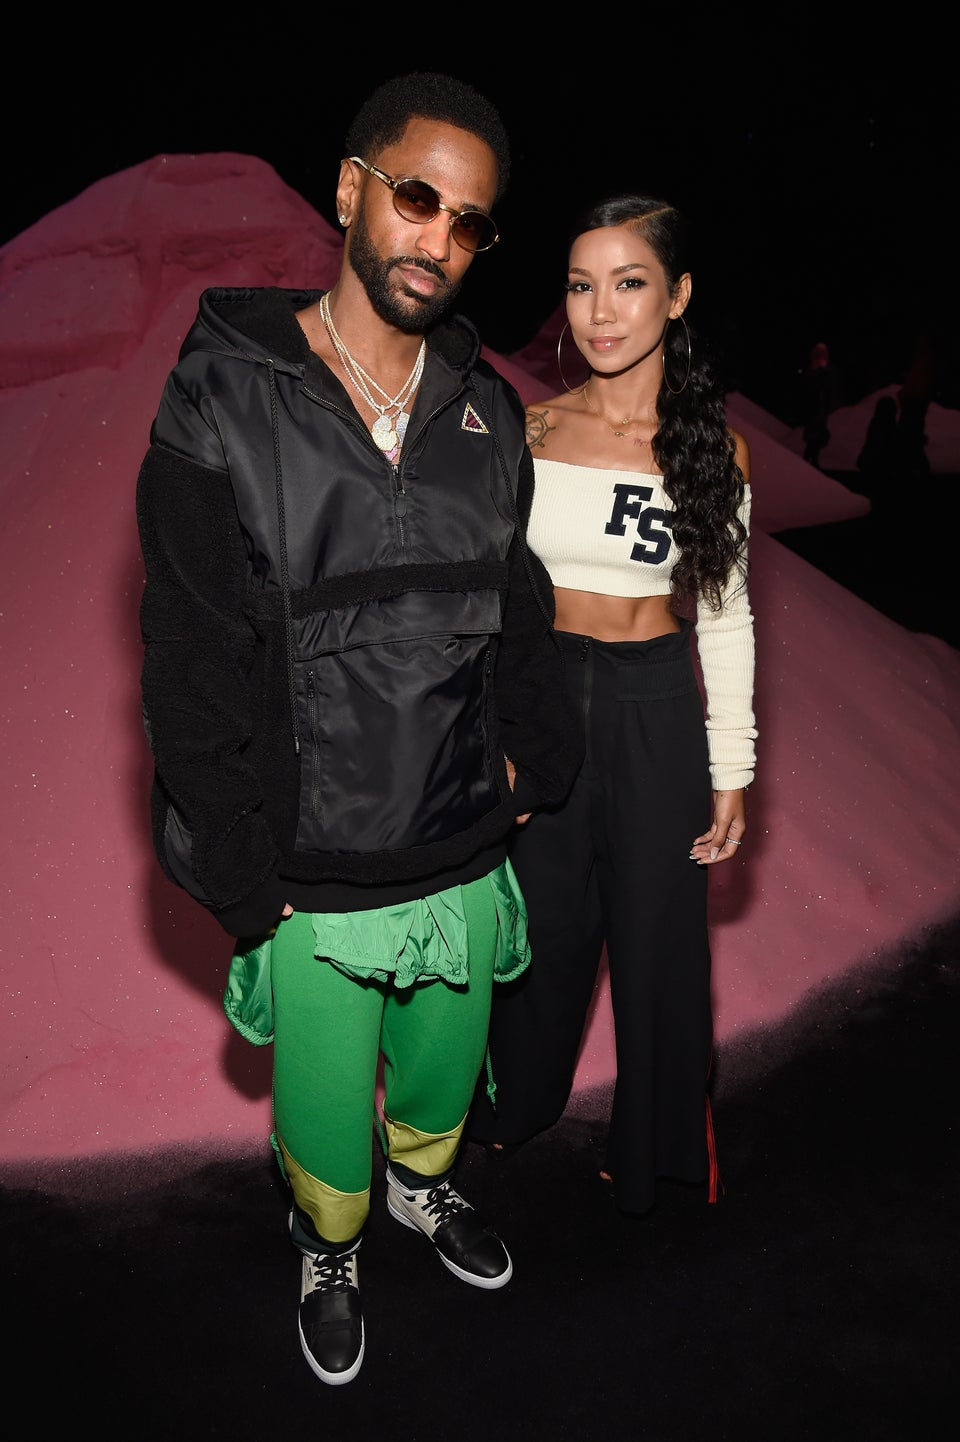 The Internet Got It Wrong About Jhene Aiko and Big Sean: She Says The Breakup Rumors Are 'Fiction'